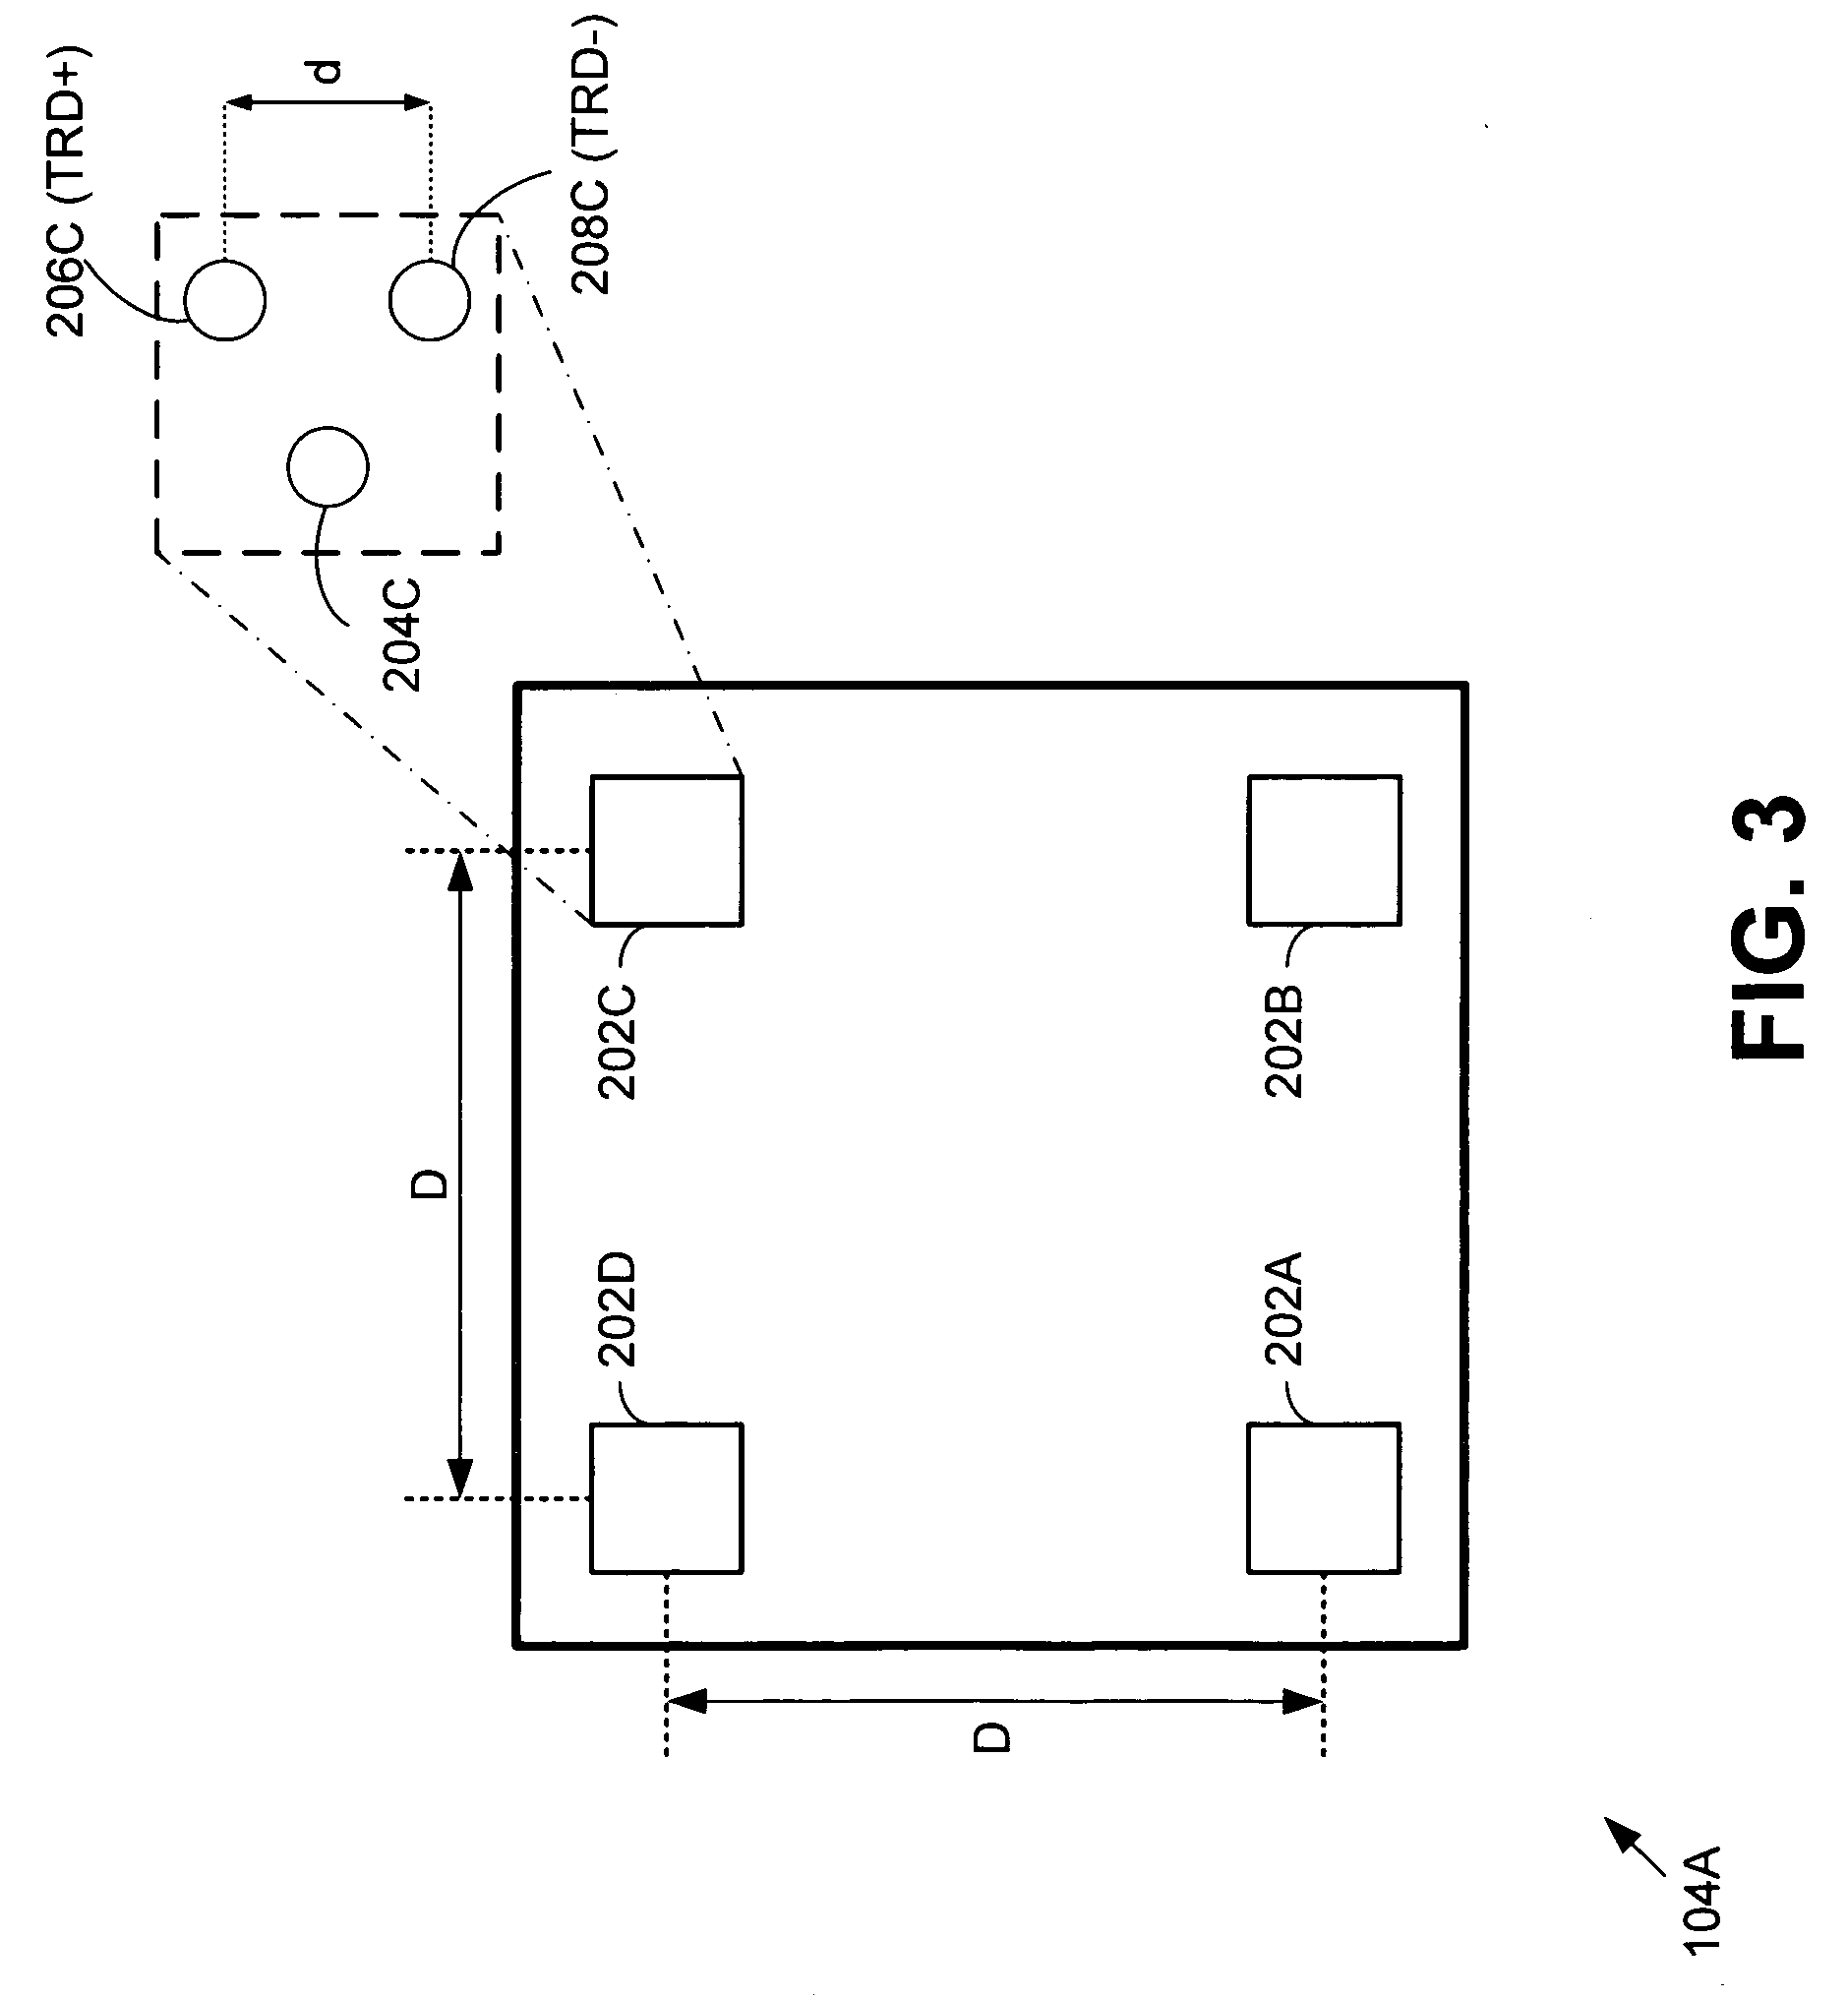 Brevet Us20060121801 High Speed Wired Media Connector With Case 508c Wiring Diagram Patent Drawing